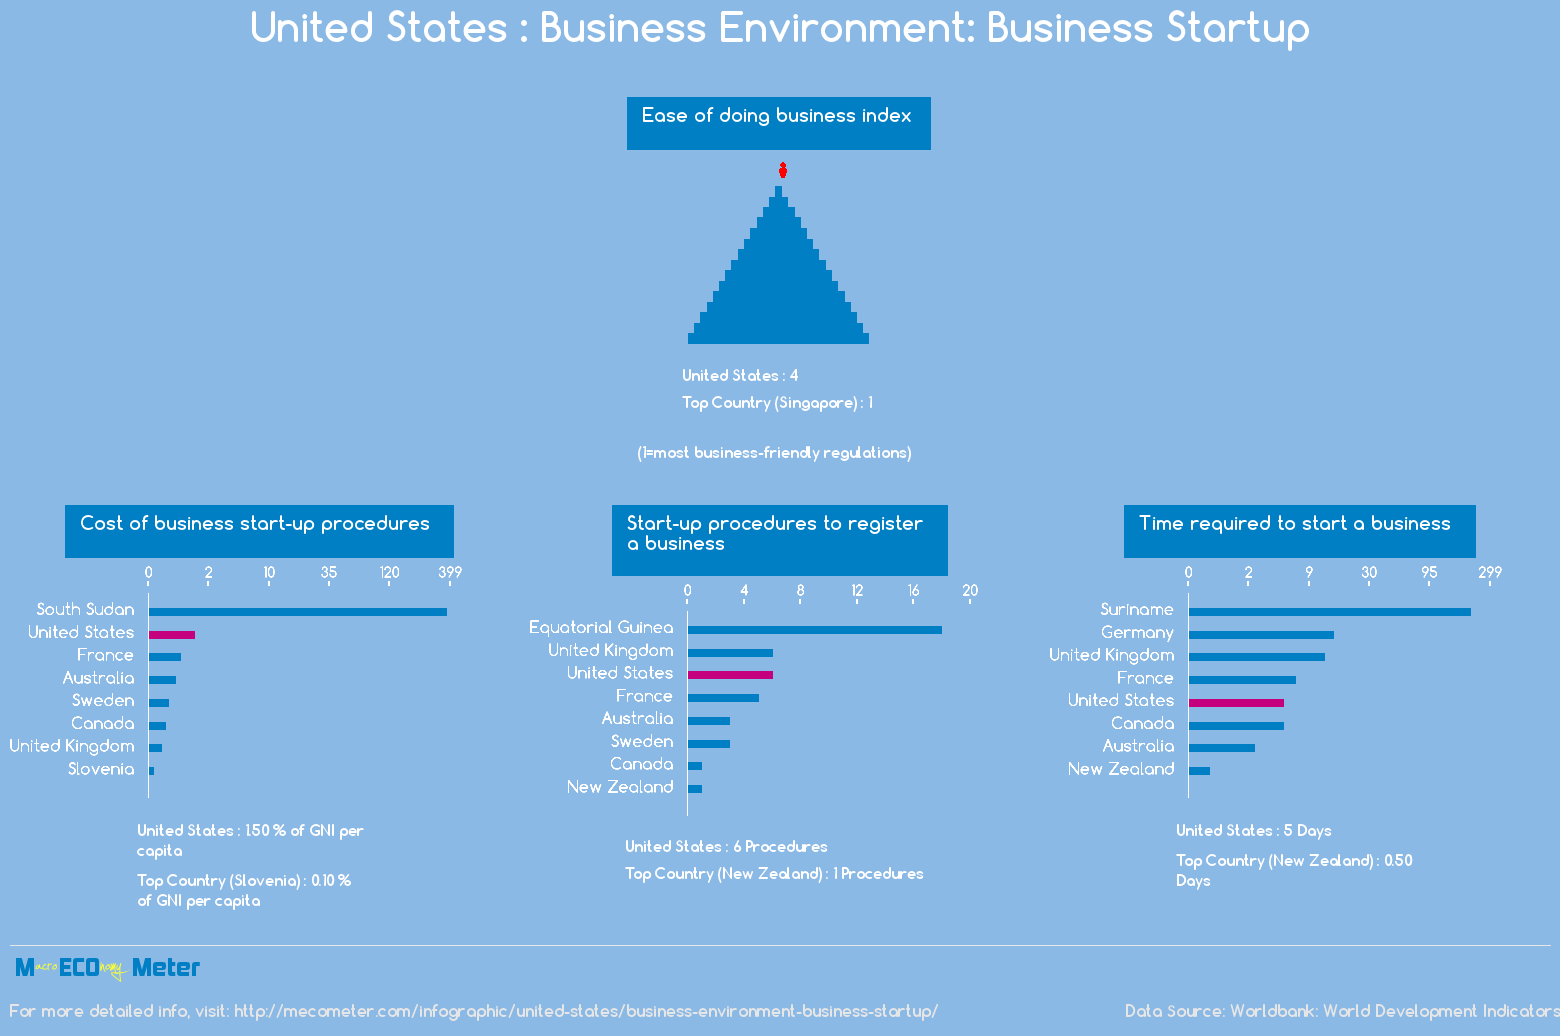 United States : Business Environment: Business Startup